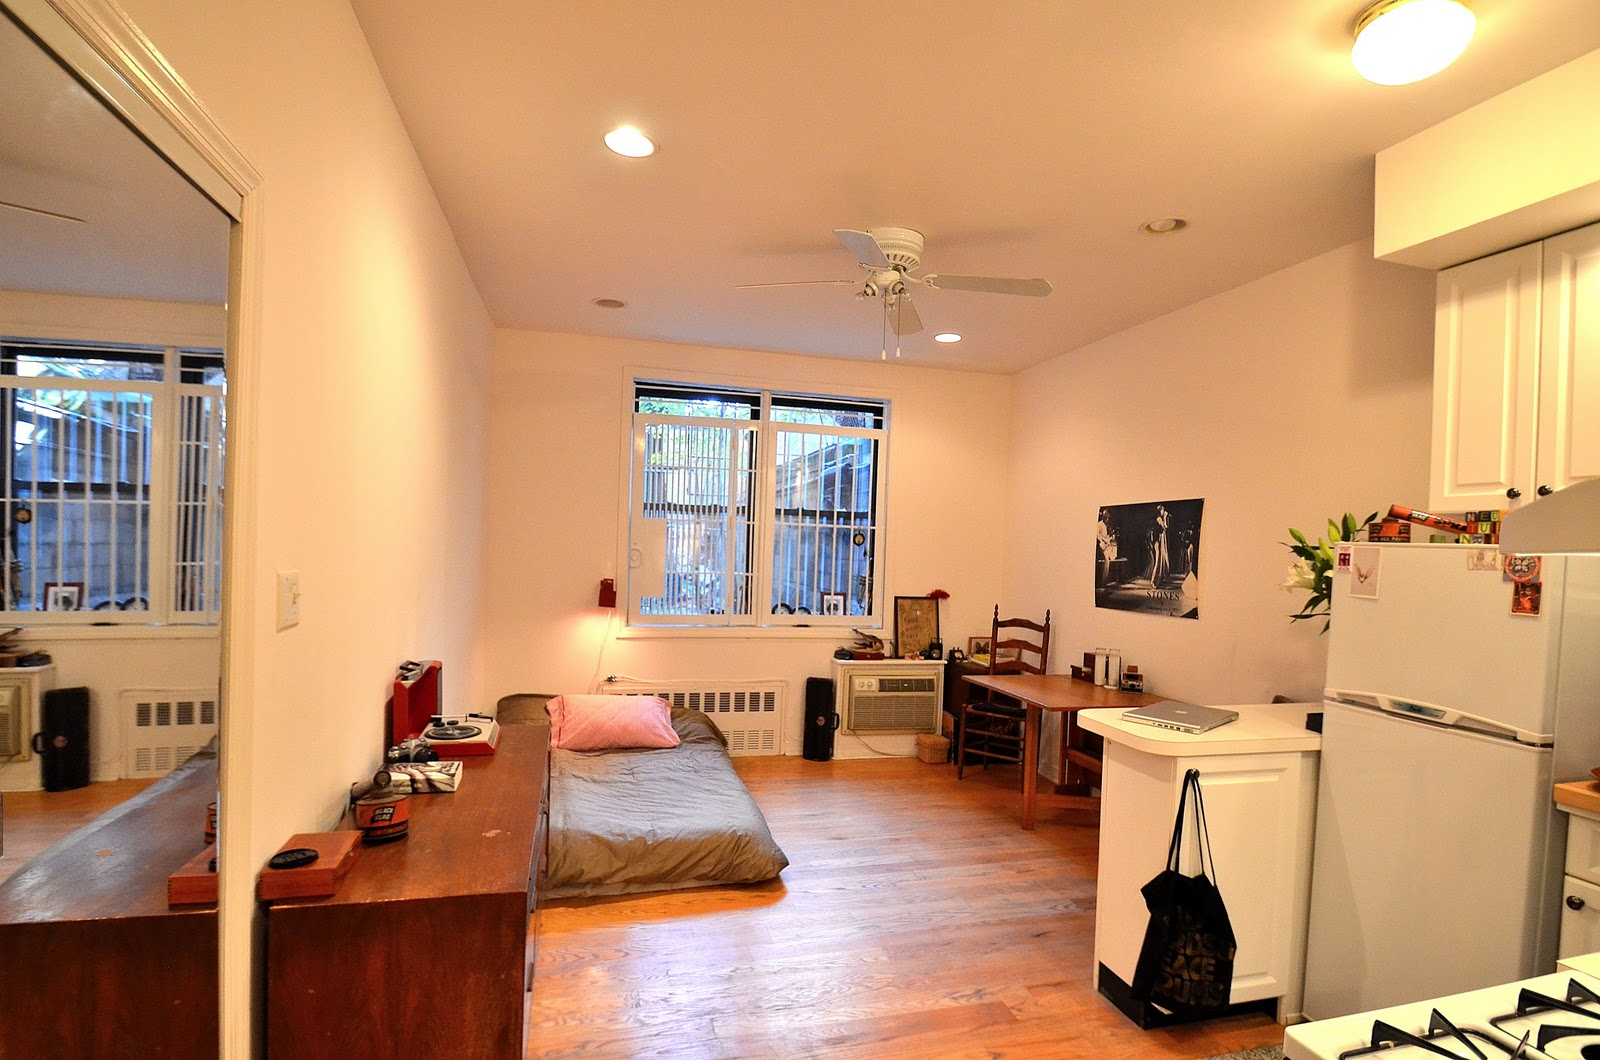 City living apt blog welcome nyc east village studio for for Apartment decorating